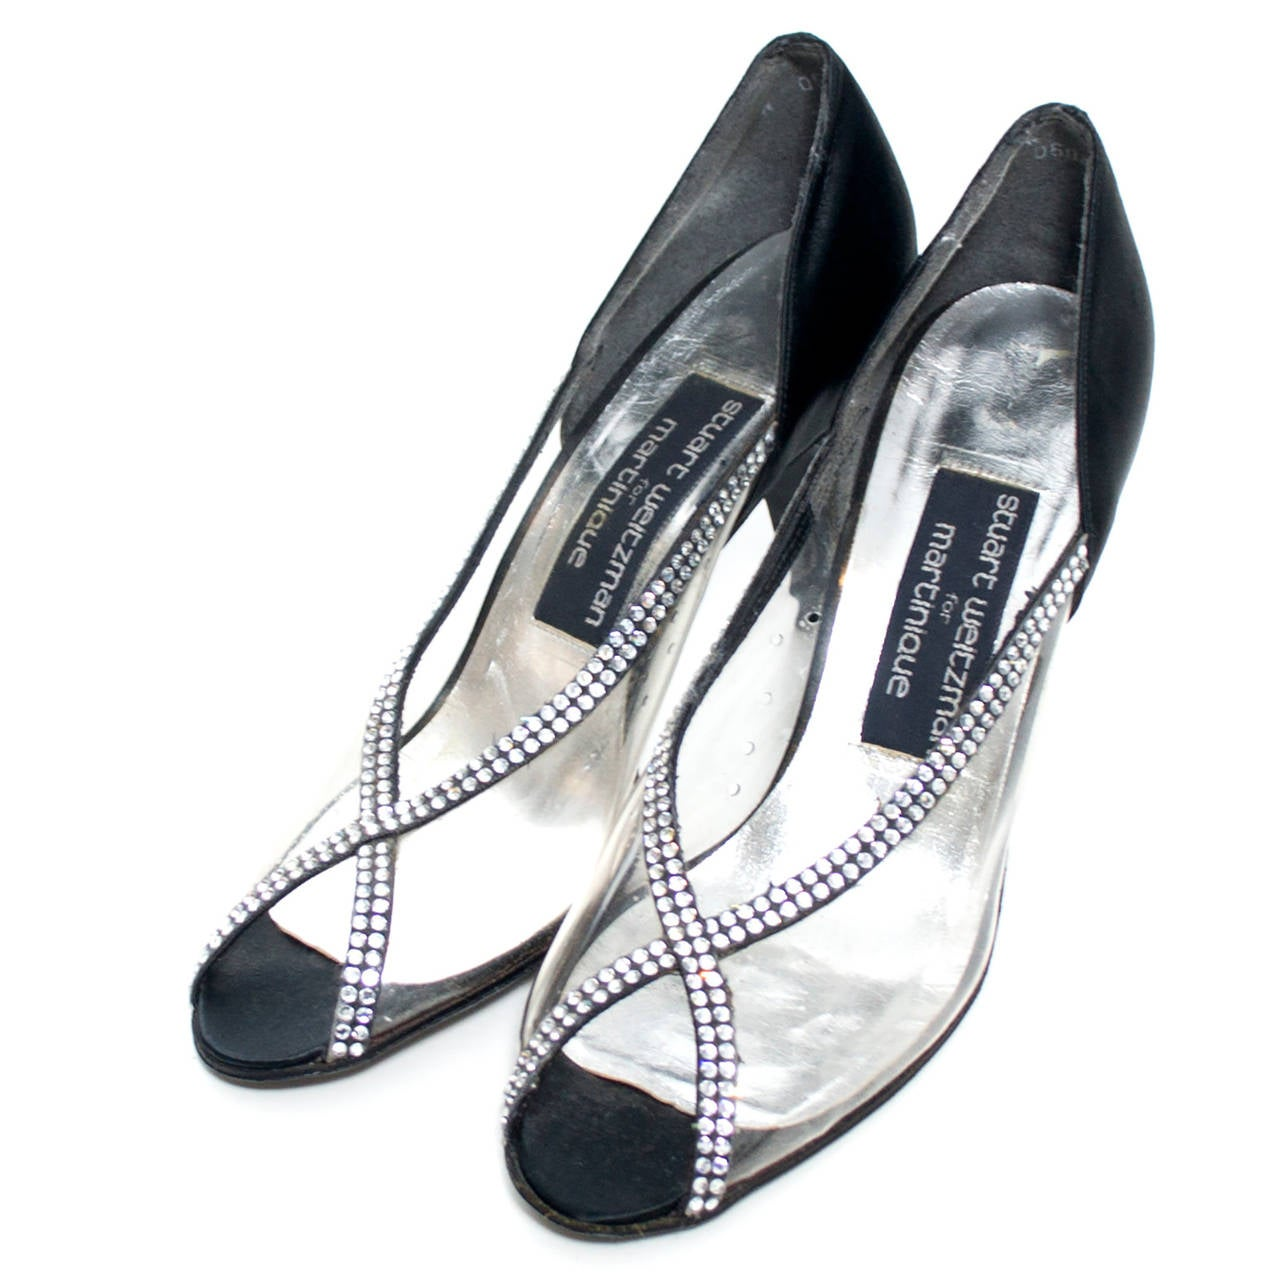 Gray Stuart Weitzman Size 7 New Vintage Black Satin Shoes With Crystals & Rhinestones For Sale